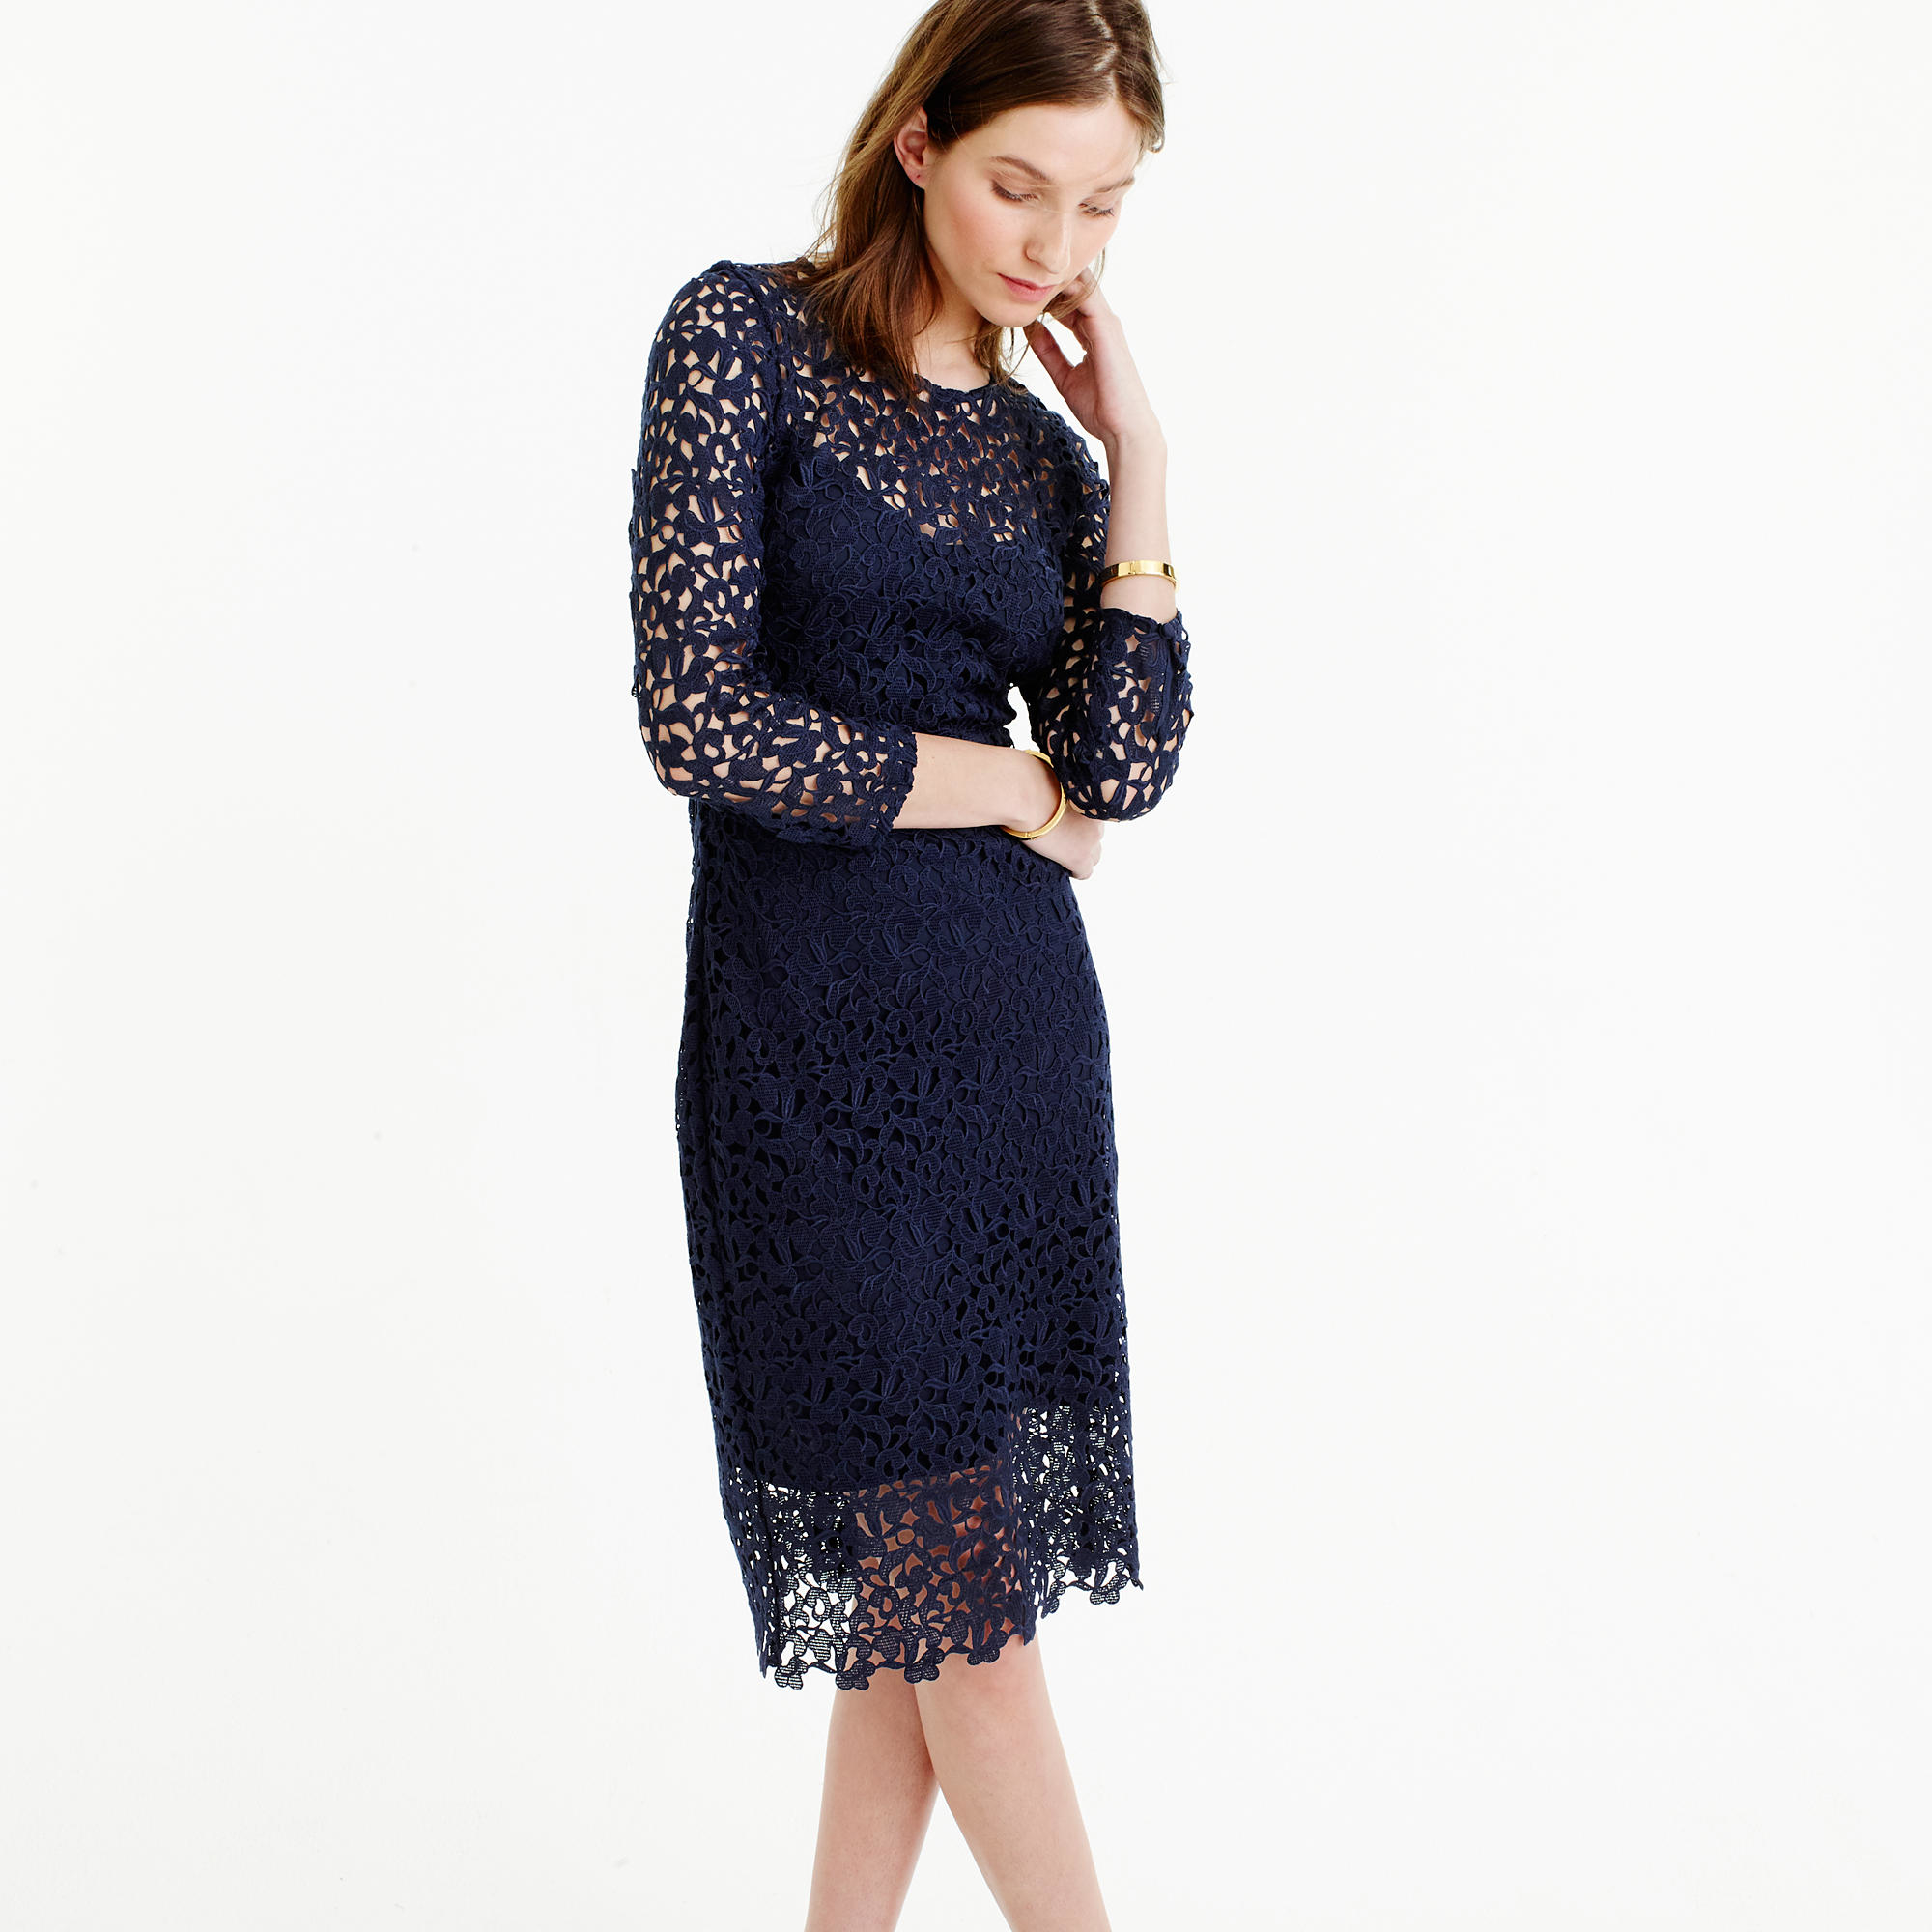 J.crew Collection Lace Sheath Dress in Blue